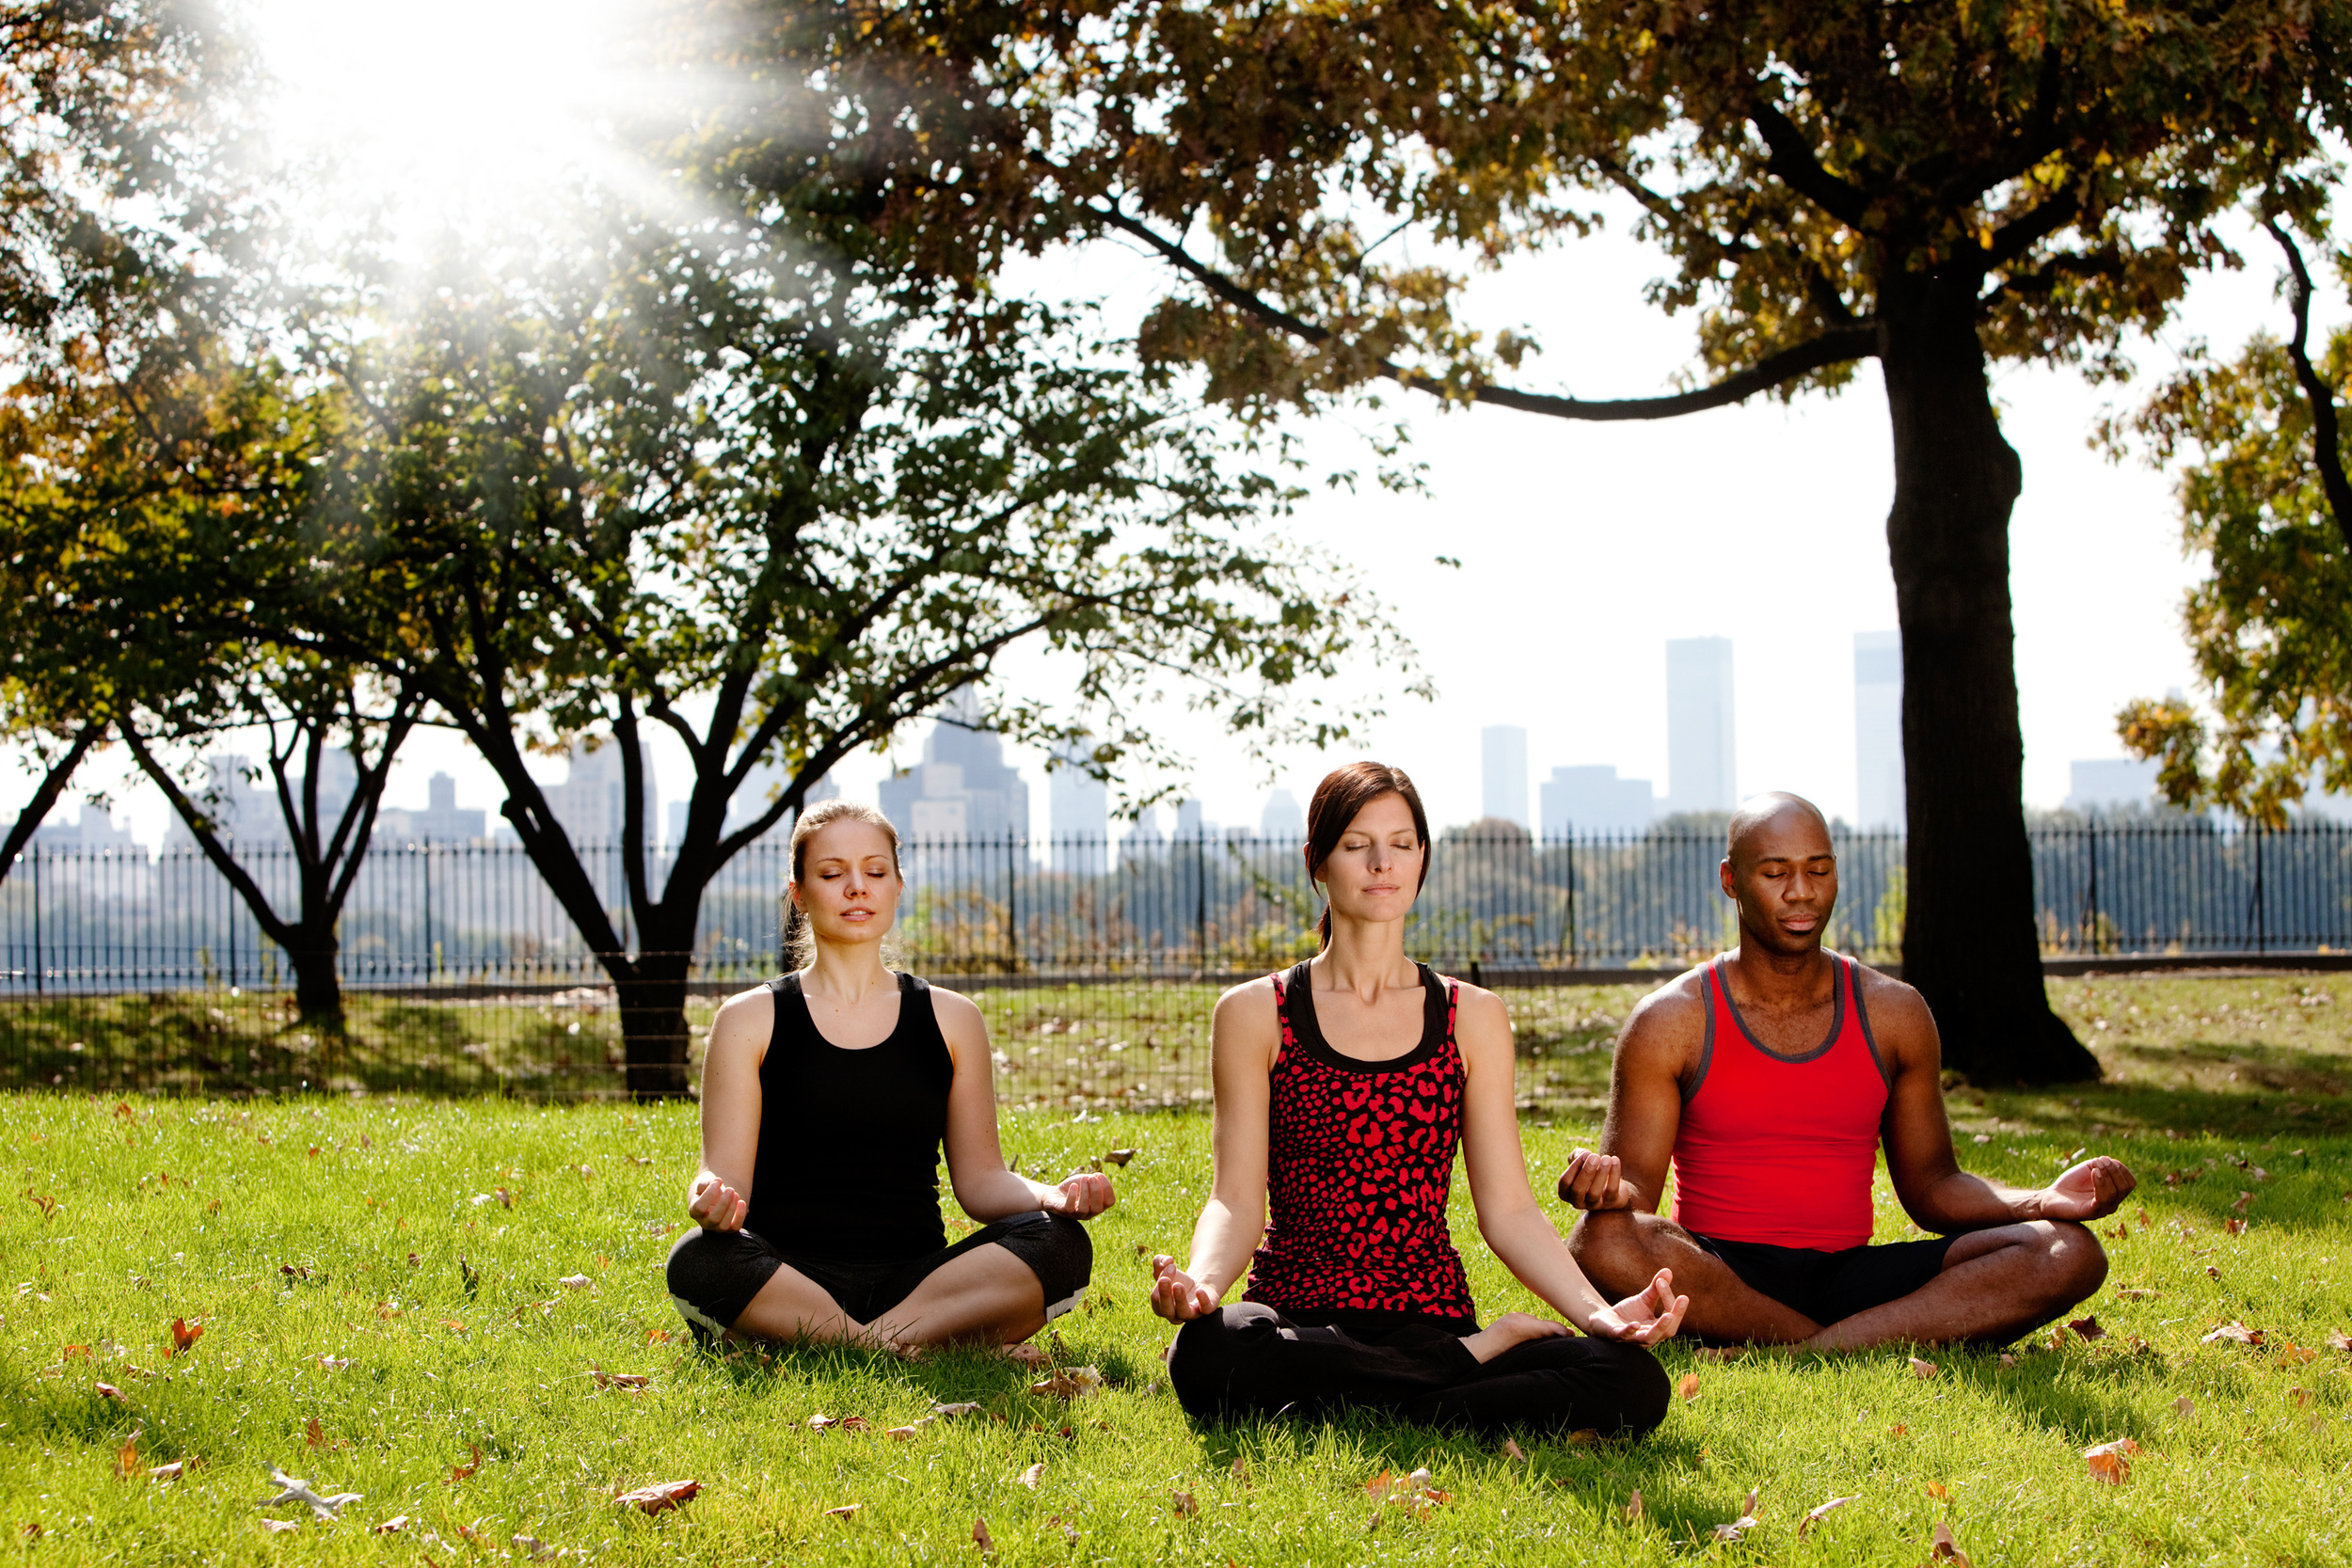 three people meditating in a city park